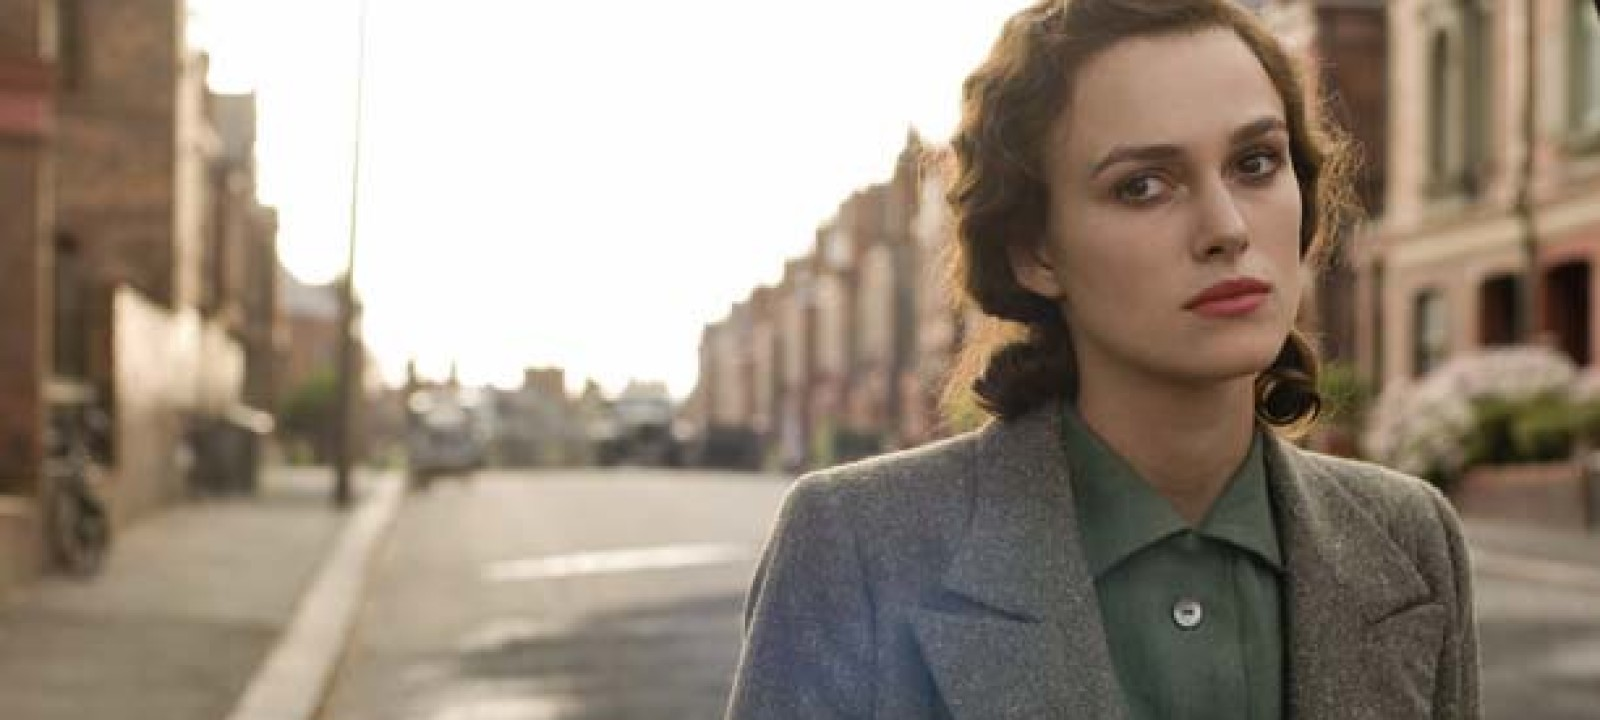 Image Result For Full Movies Keira Knightley